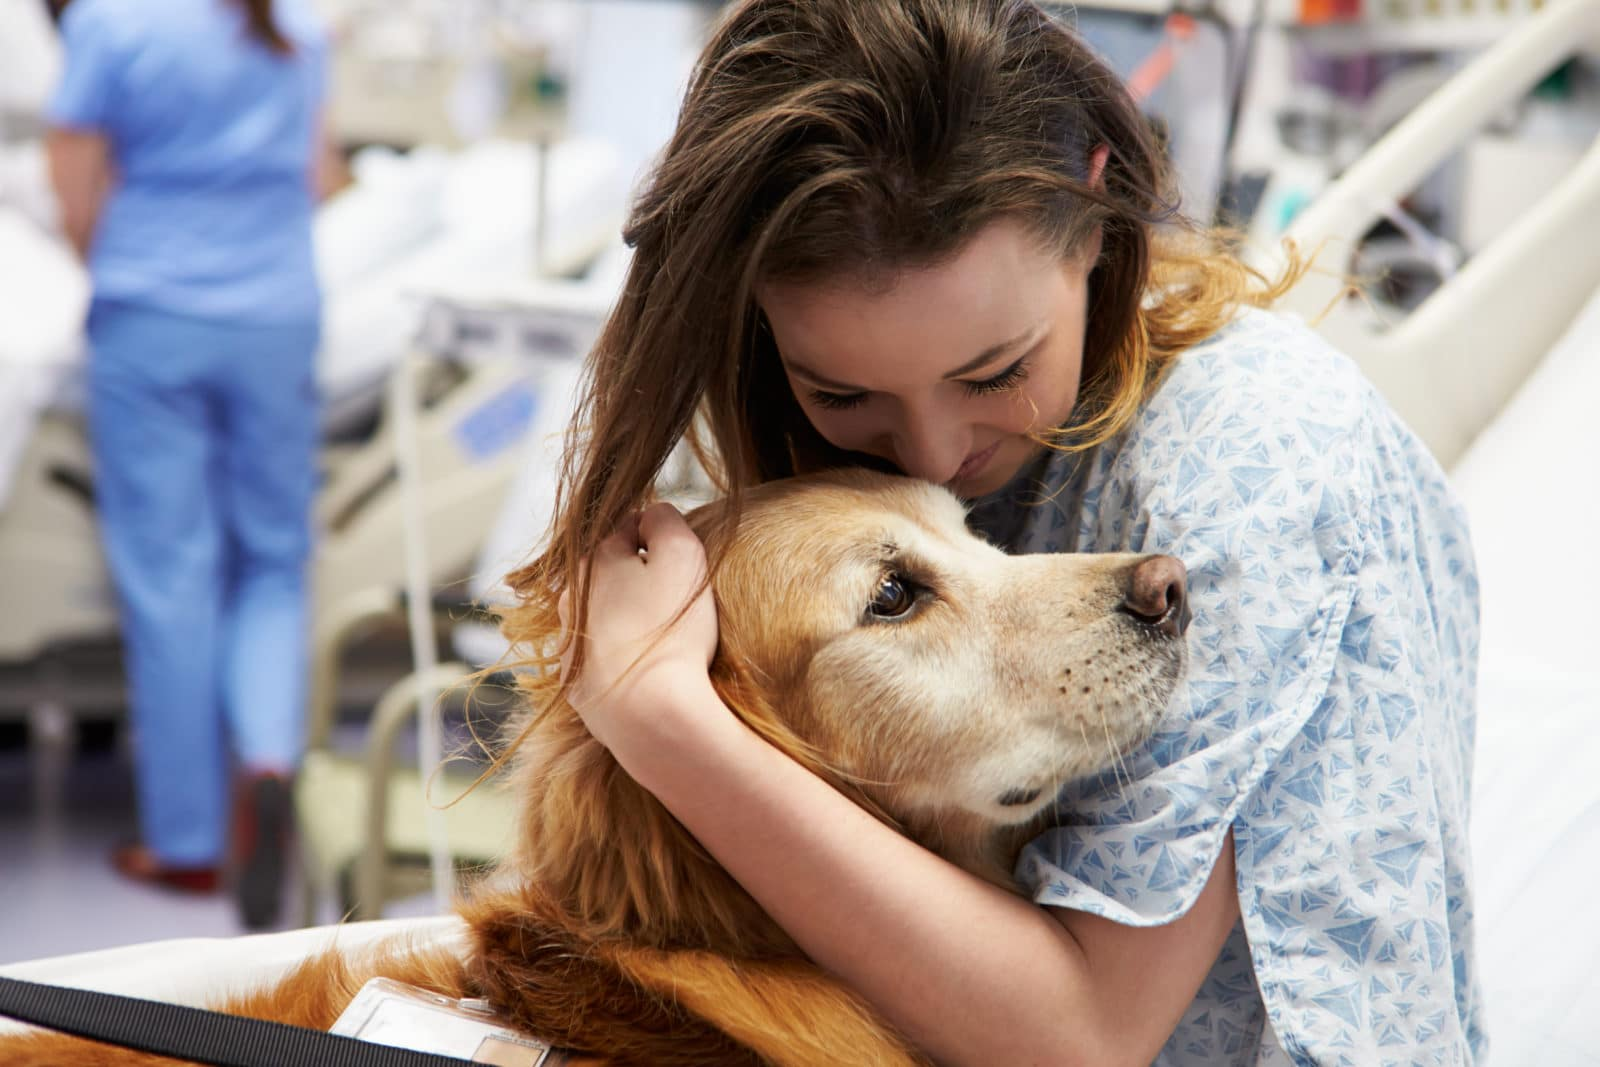 animal therapy for chronic pain, Animal Therapy for Chronic Pain: How Fluffy Can Help Heal